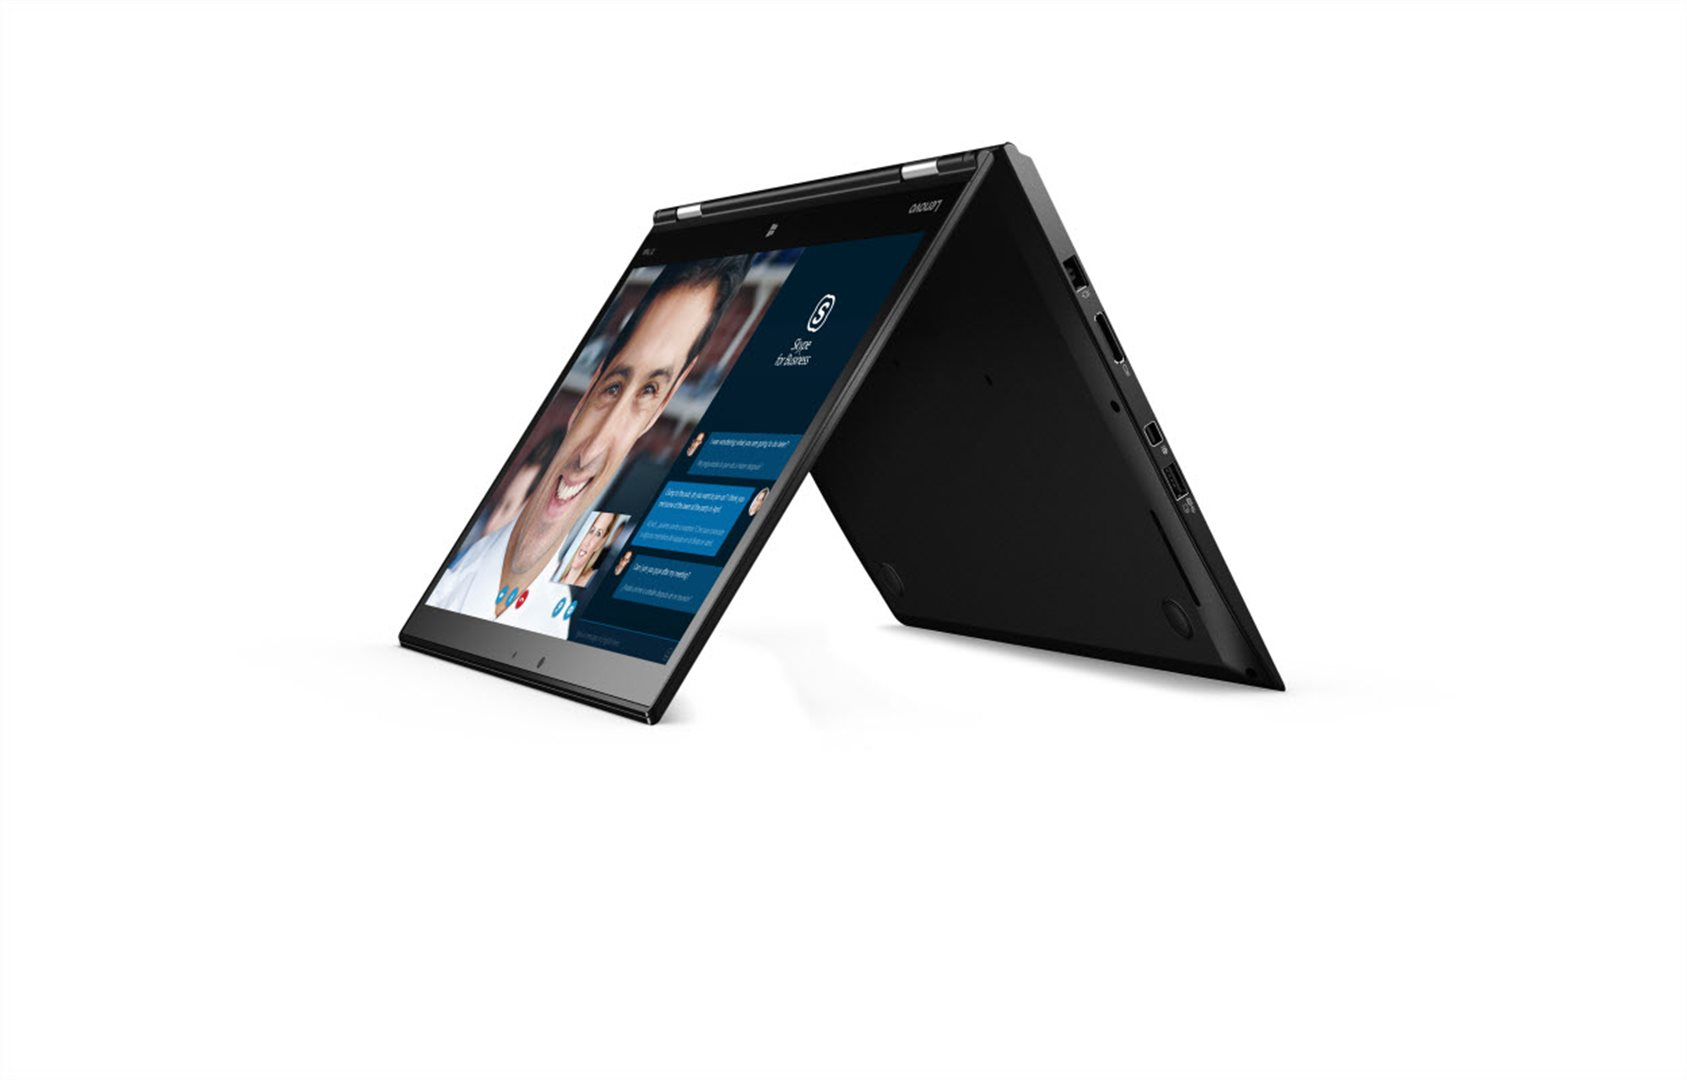 "Lenovo ThinkPad X1 YOGA i7-6600U/8GB/256GB SSD/HD Graphics 520/14""WQHD IPS multitouch/4G/Win10PRO/Black"